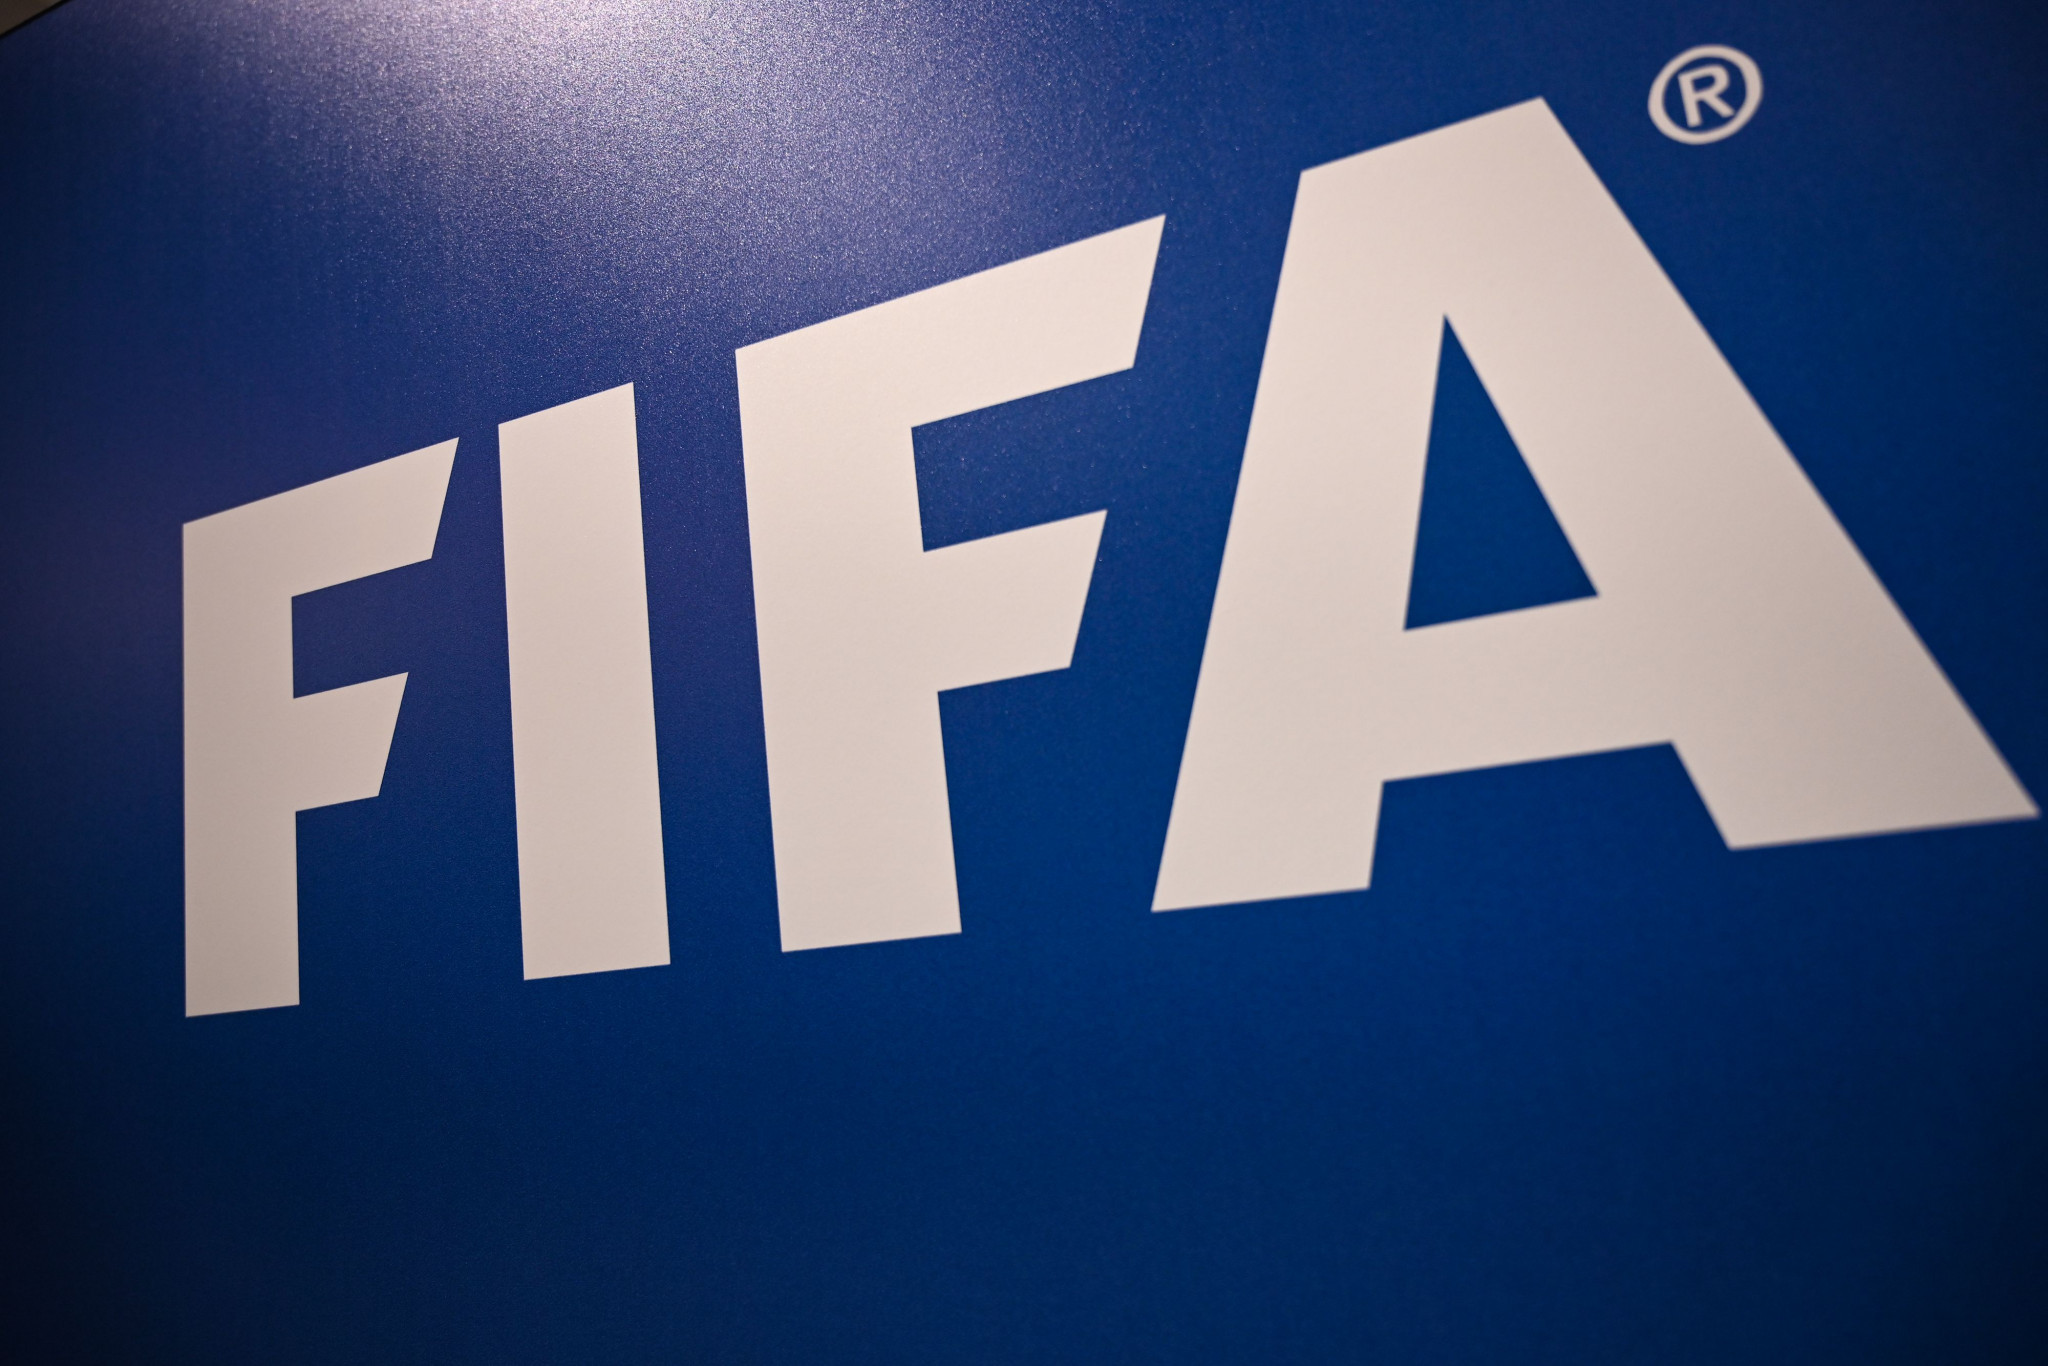 FIFA's financial statements show the governing body has secured insurance for the Qatar 2022 World Cup ©Getty Images